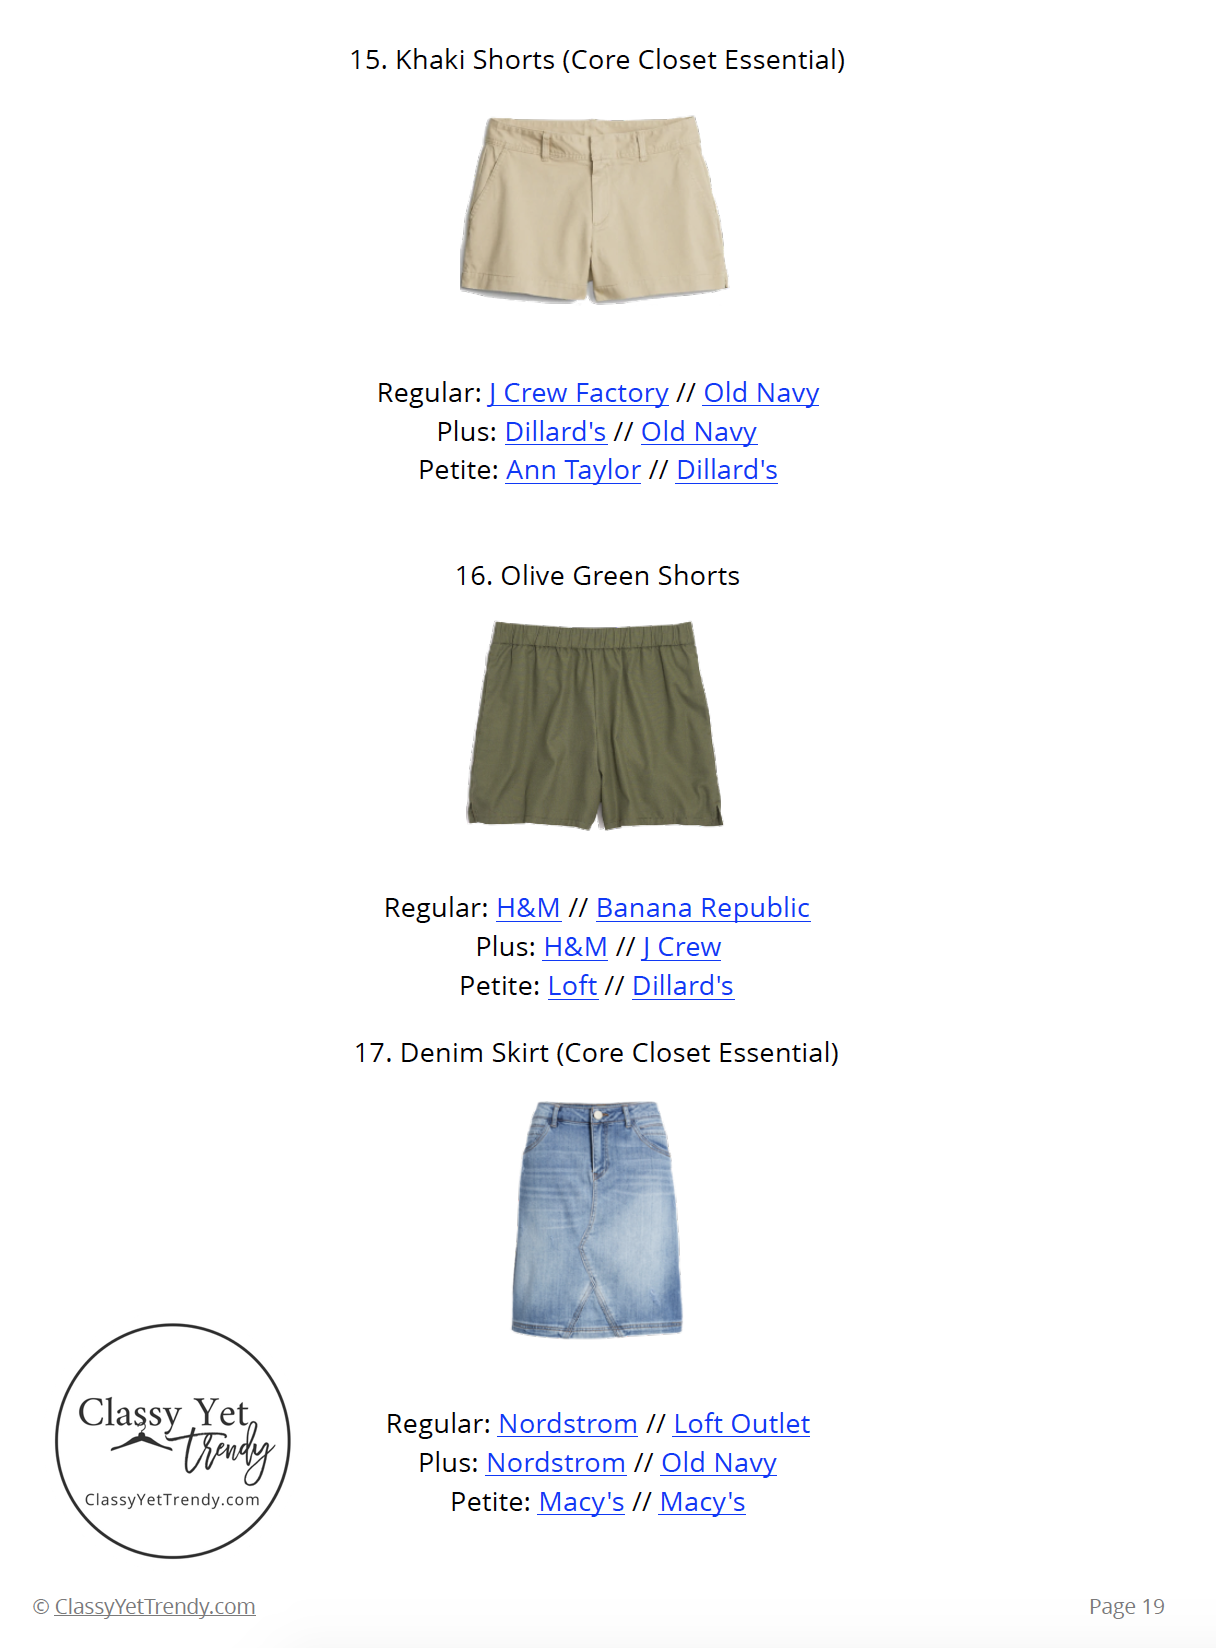 Stay At Home Mom Capsule Wardrobe Summer 2019 - page 19